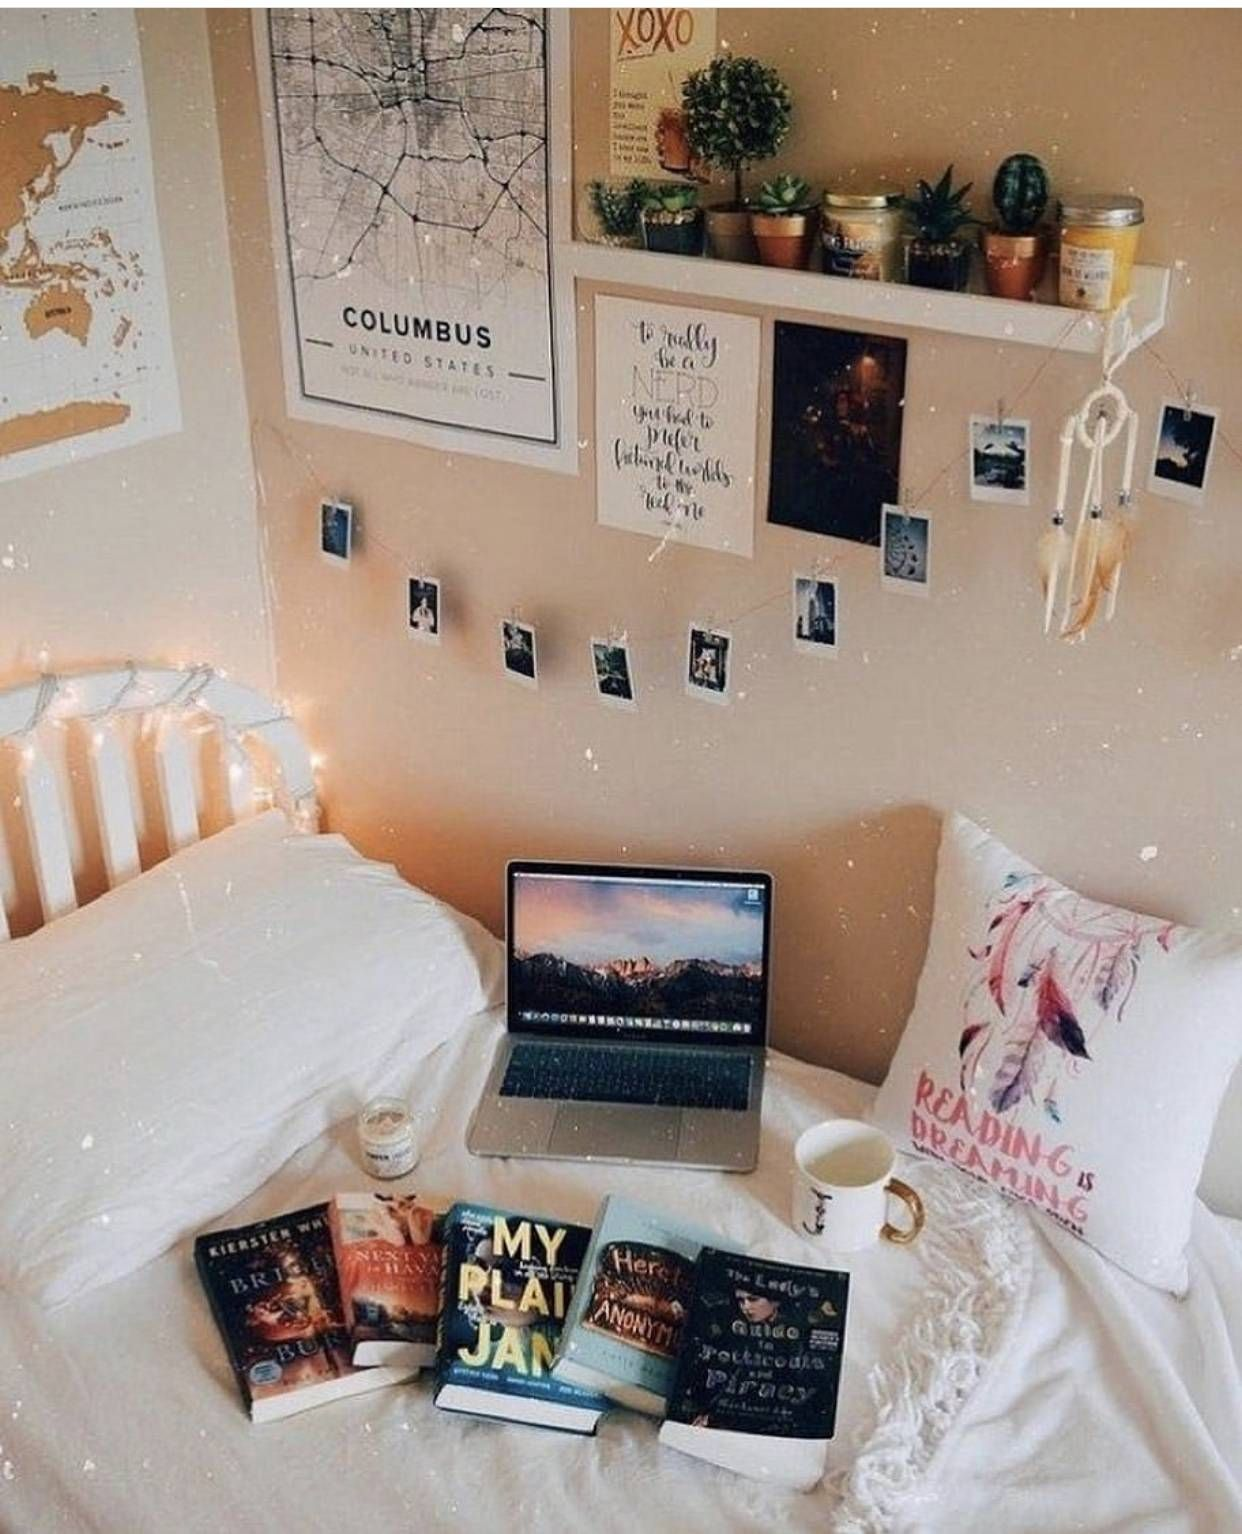 Vsco Decor Ideas - Must Have Decor for a Vsco Room - The Pink Dream